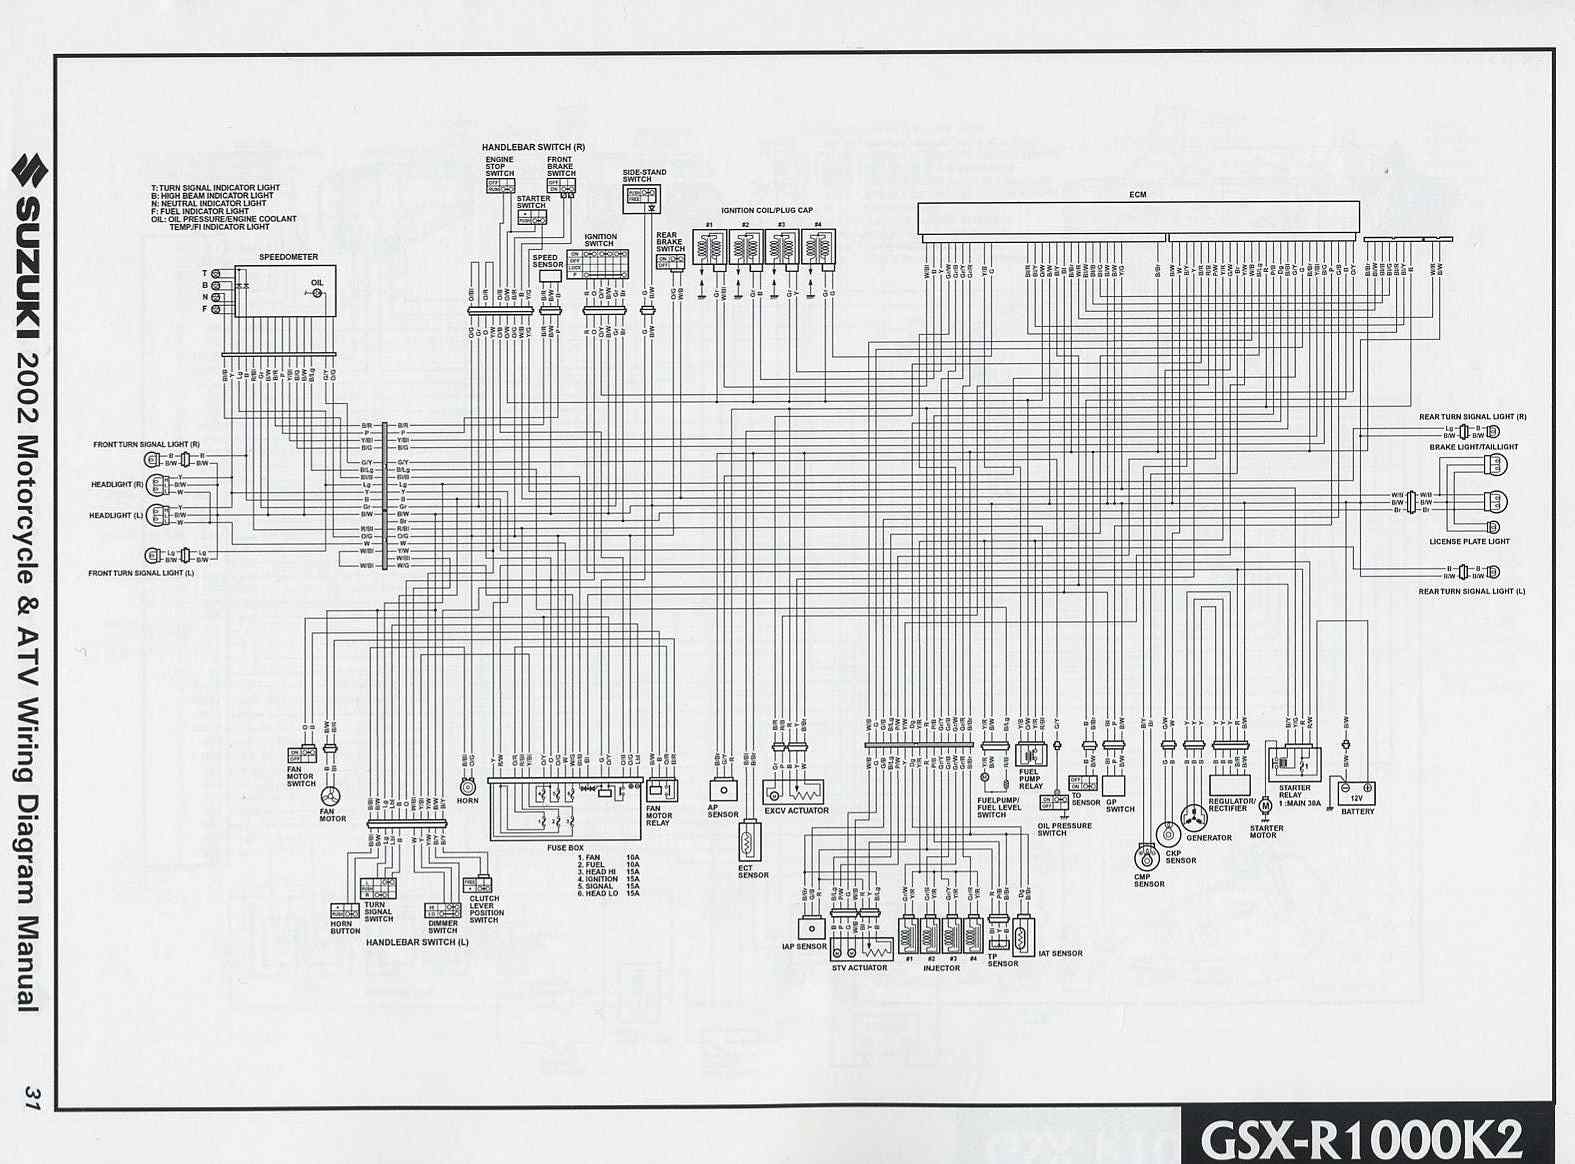 hight resolution of 2001 suzuki gsxr 1000 wiring diagram wiring diagrams img rh 48 andreas bolz de 2001 suzuki